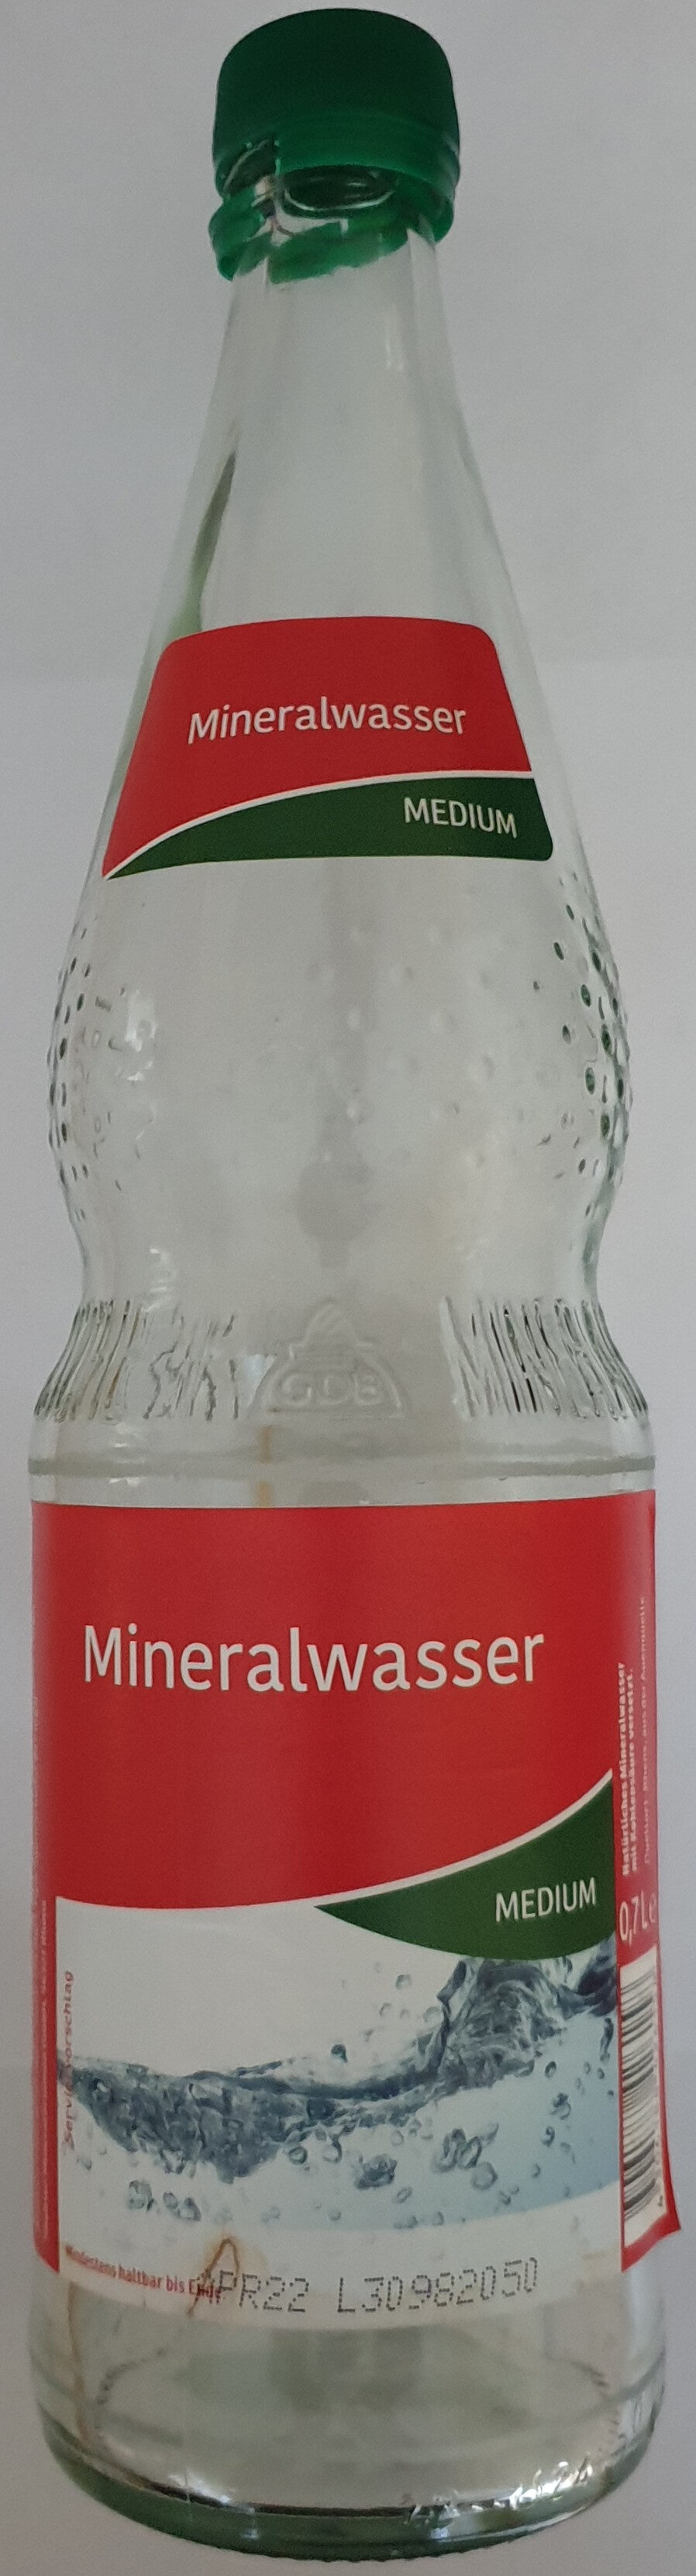 Mineralwasser medium - Product - de